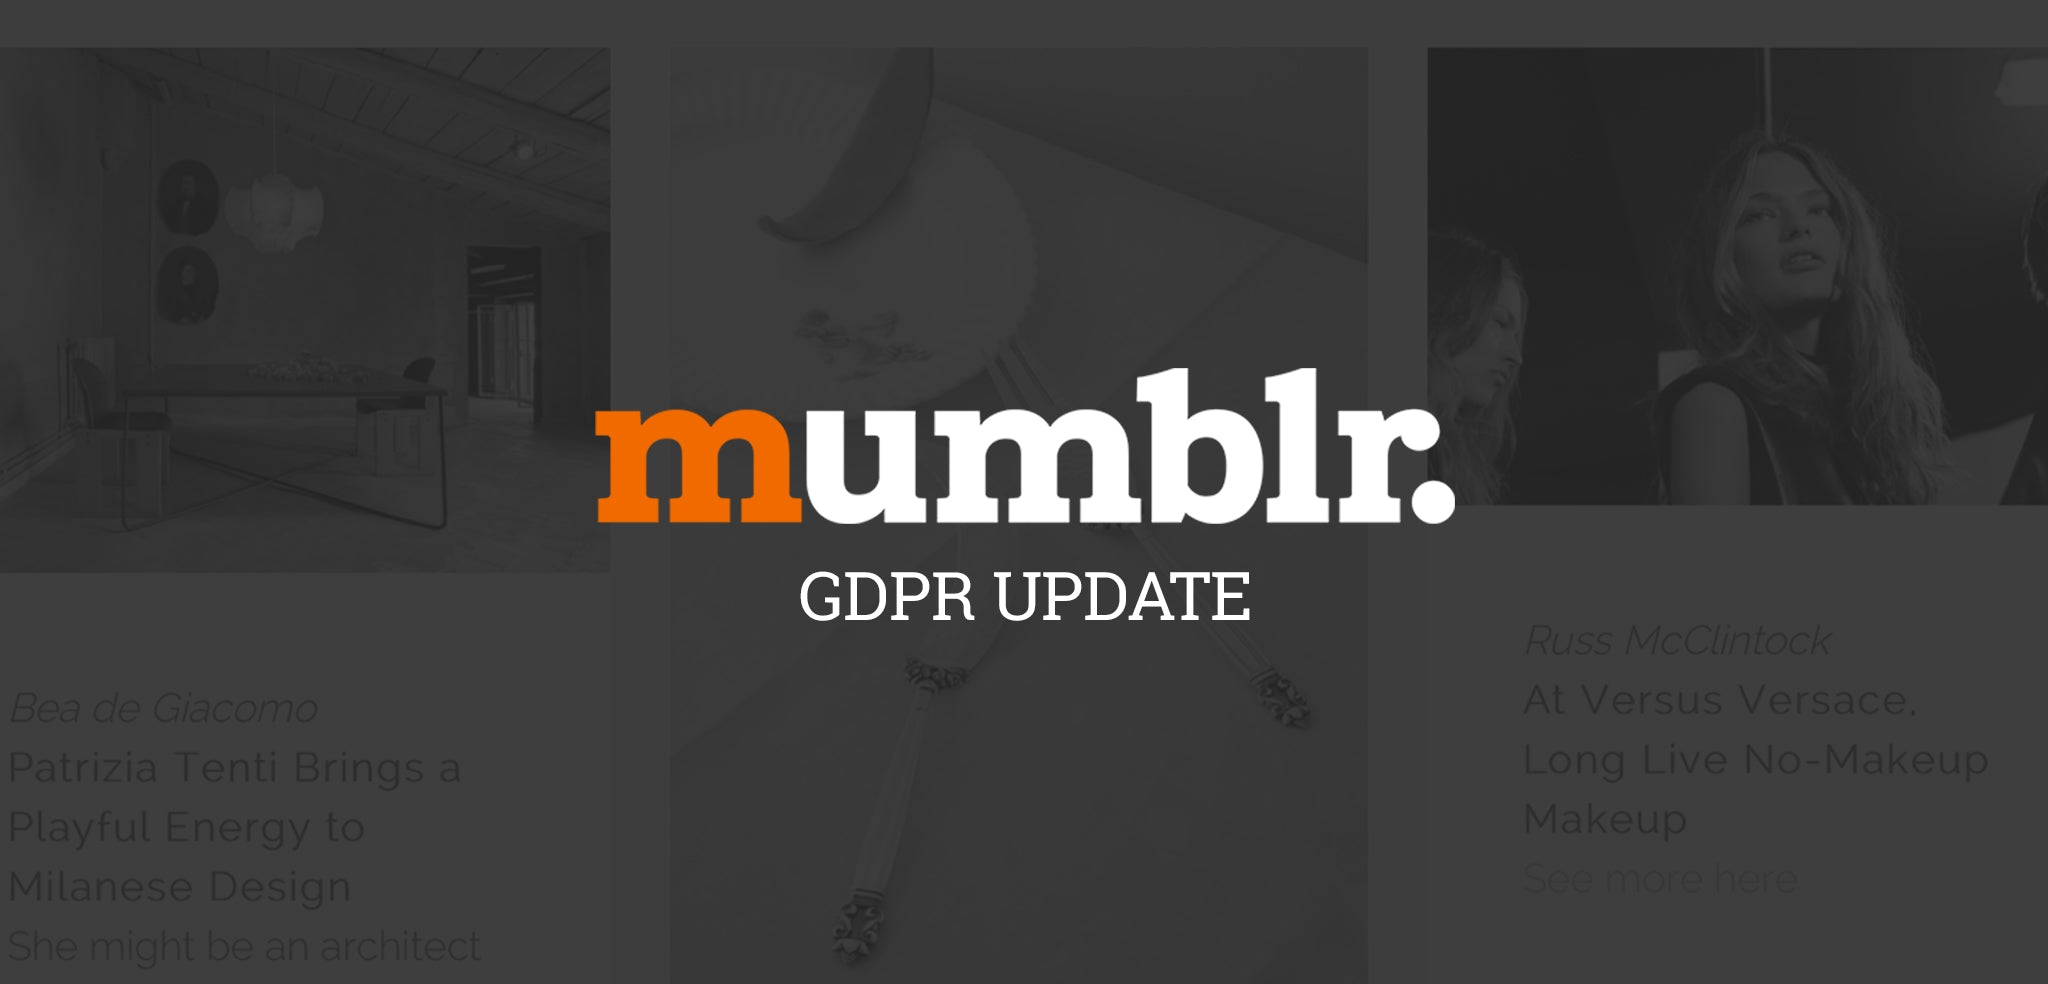 Mumblr GDPR Update